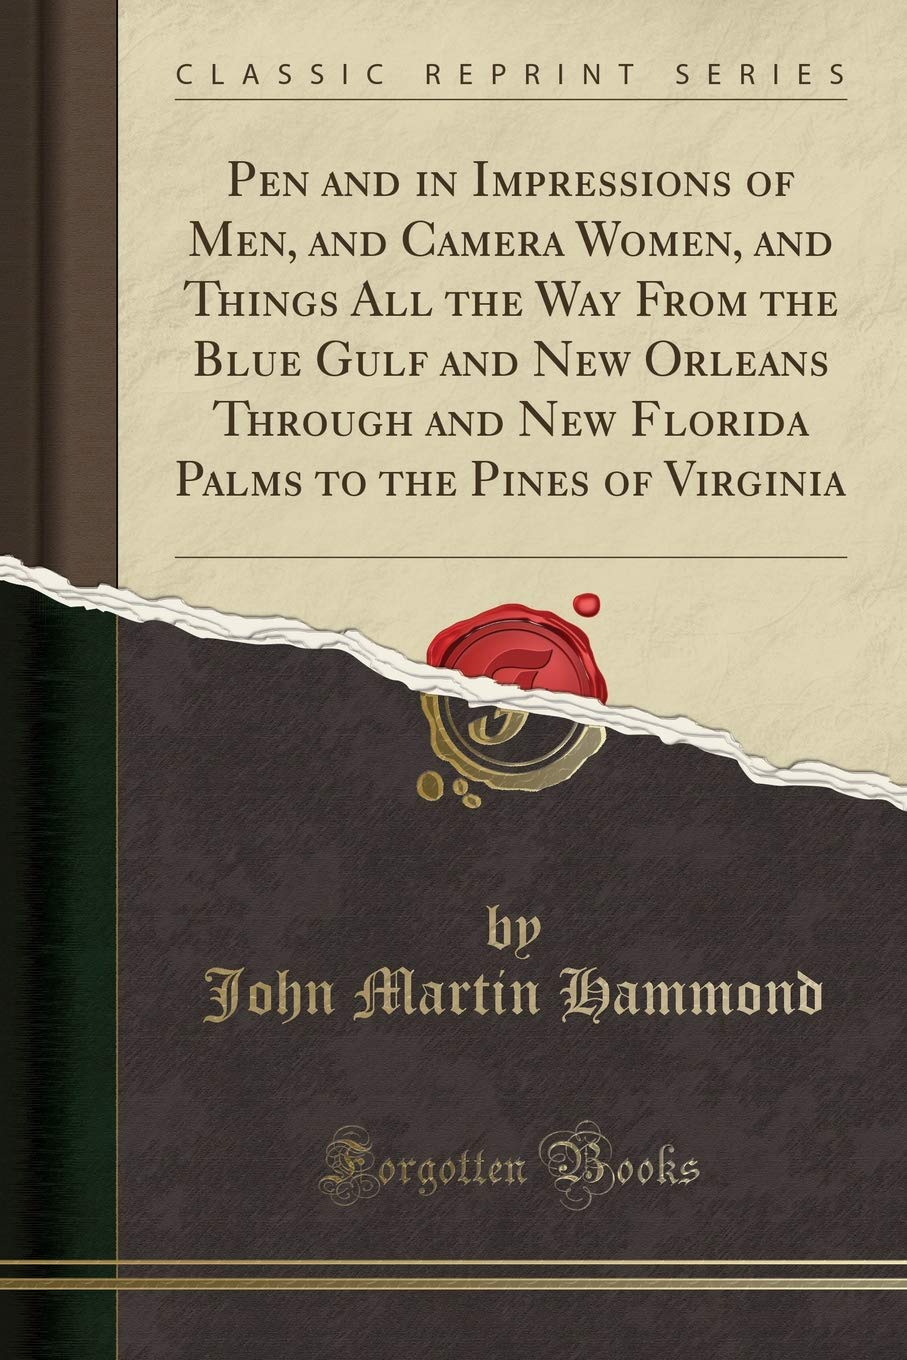 Download Pen and in Impressions of Men, and Camera Women, and Things All the Way From the Blue Gulf and New Orleans Through and New Florida Palms to the Pines of Virginia (Classic Reprint) PDF